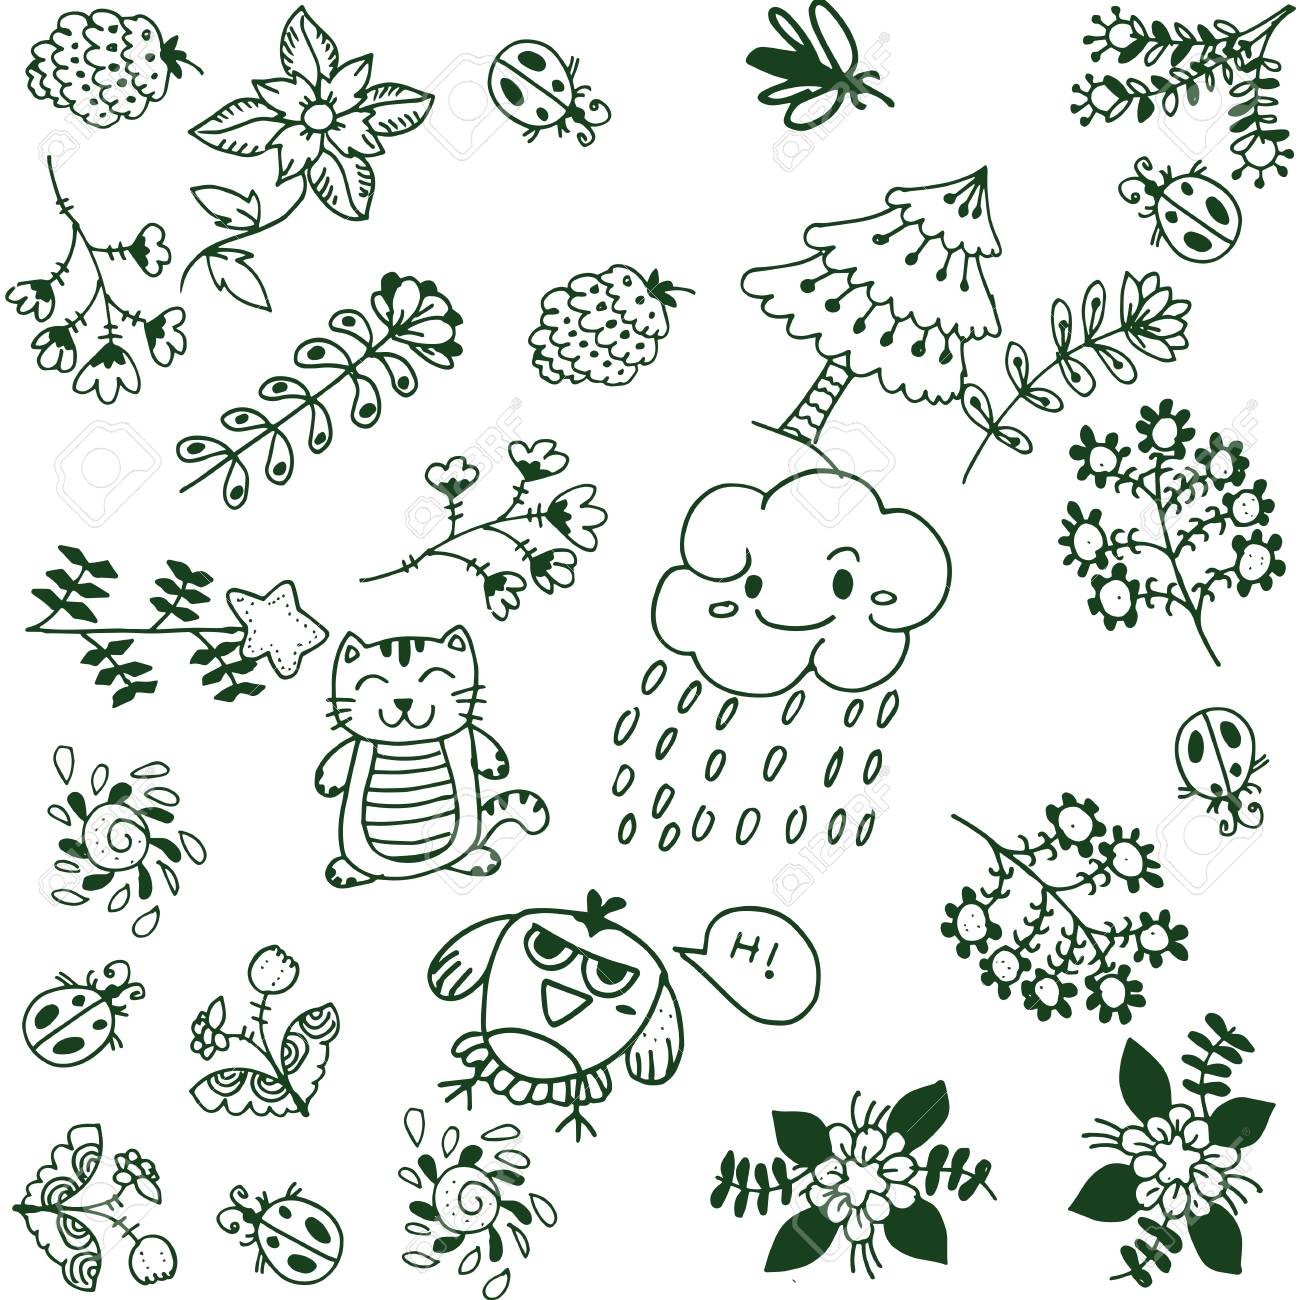 Simple flower doodle art with white backgrounds